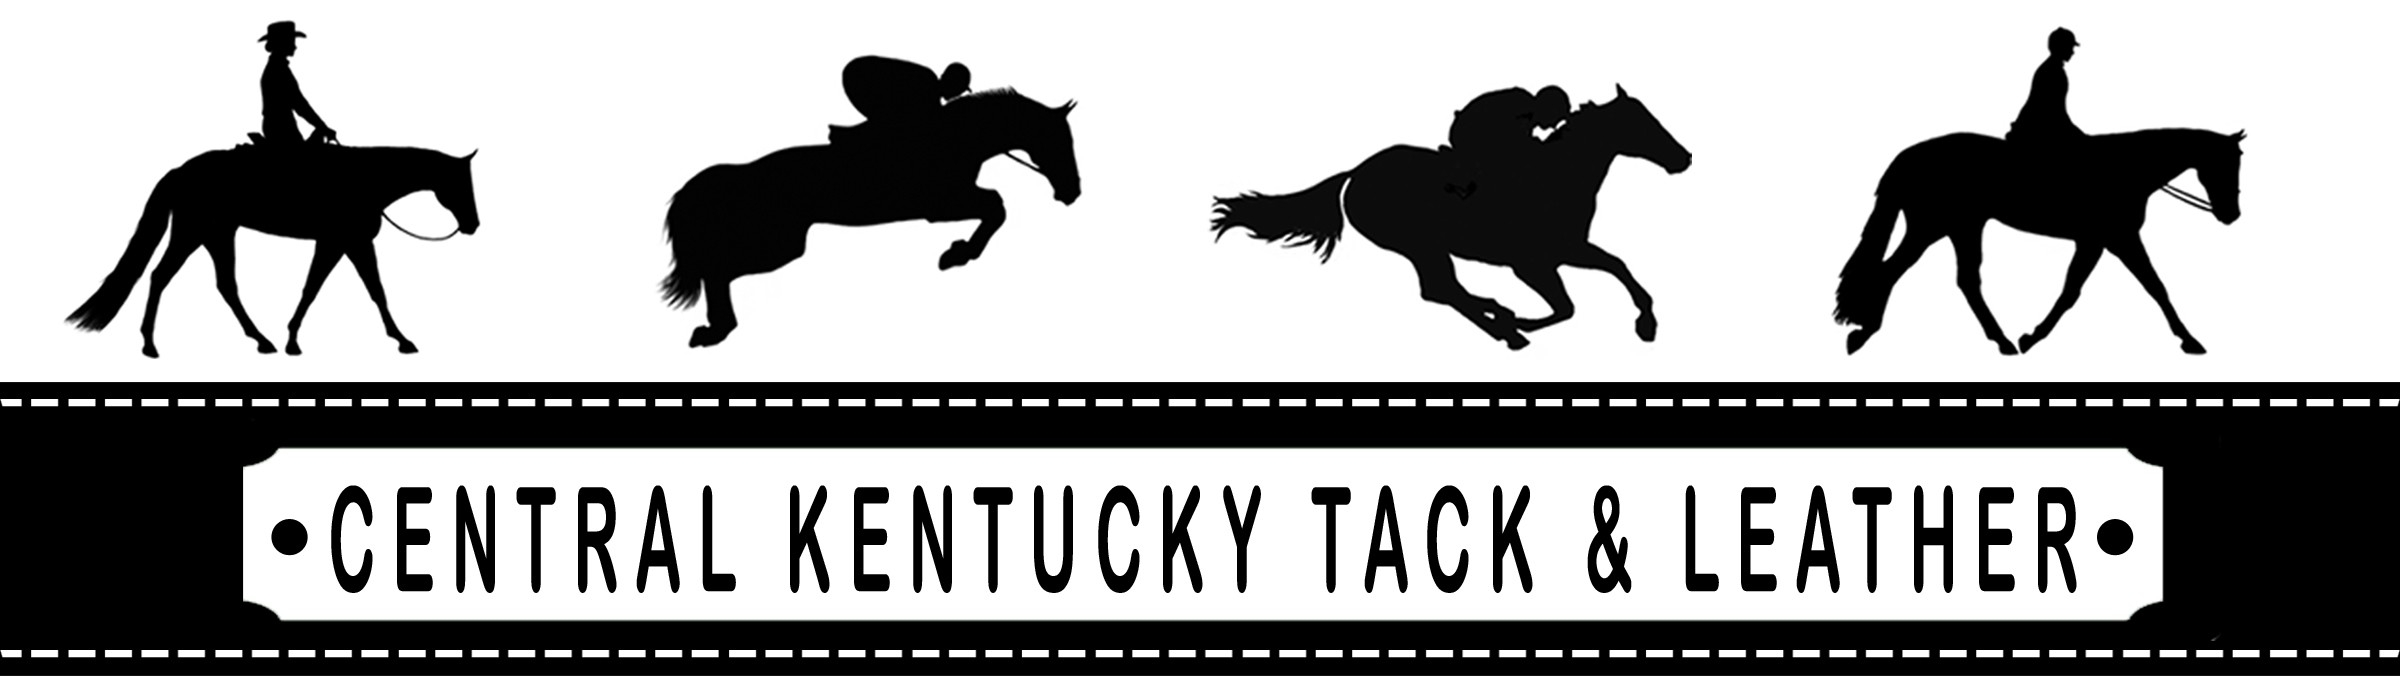 Central Kentucky Tack & Leather